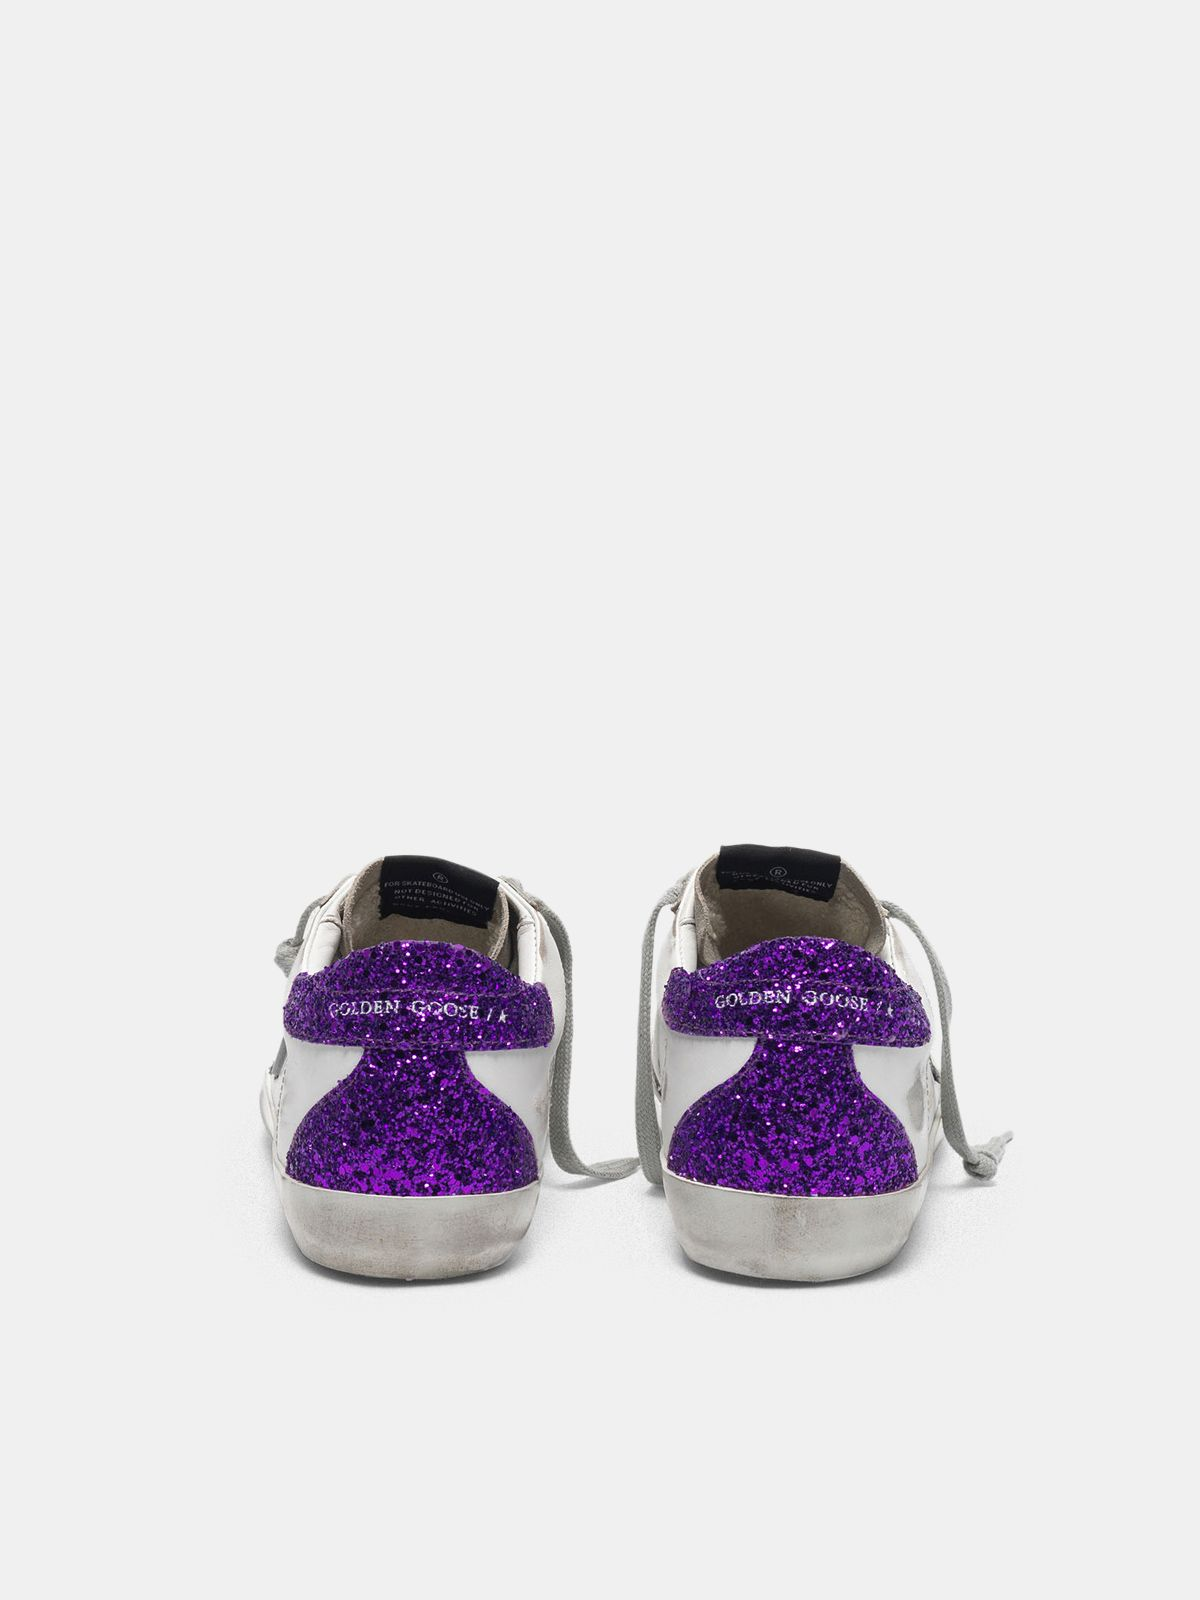 Golden Goose - White Super-Star sneakers with glittery purple rear in